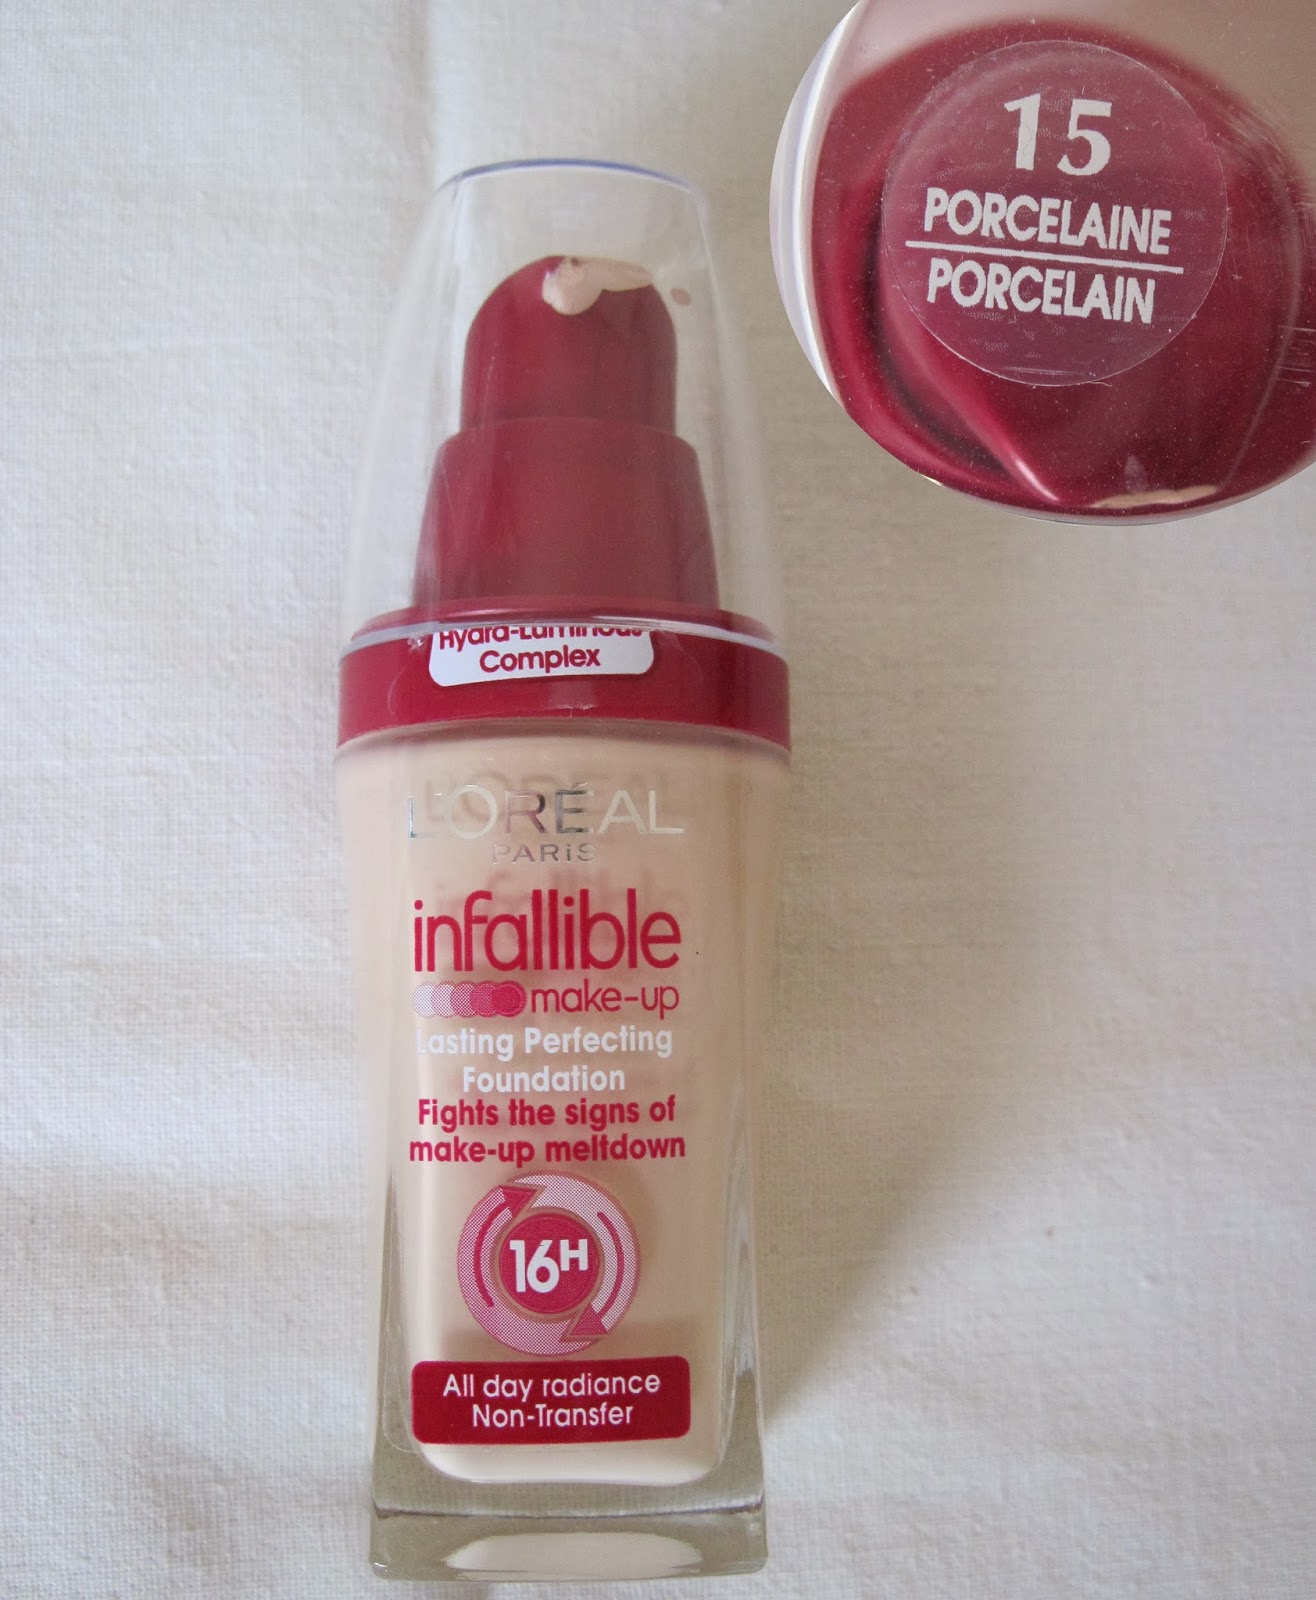 DISC Loreal Infallible Powder Mahogany 370 Source · L Oreal Infallible Foundation Review&Swatches Cristina Elena